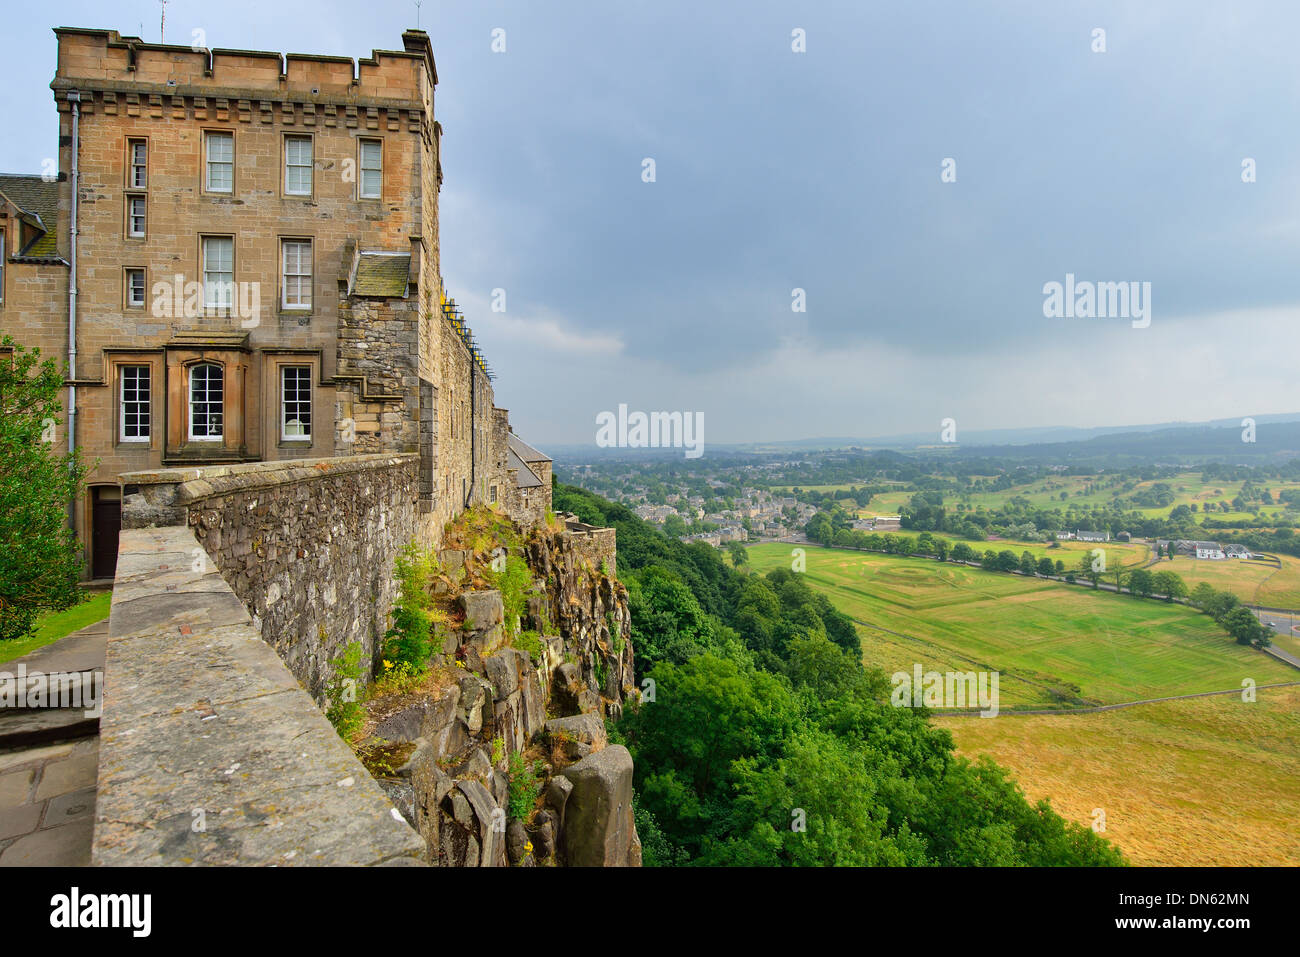 View from the castle wall, Stirling Castle, Stirling, Central, Scotland, United Kingdom Stock Photo